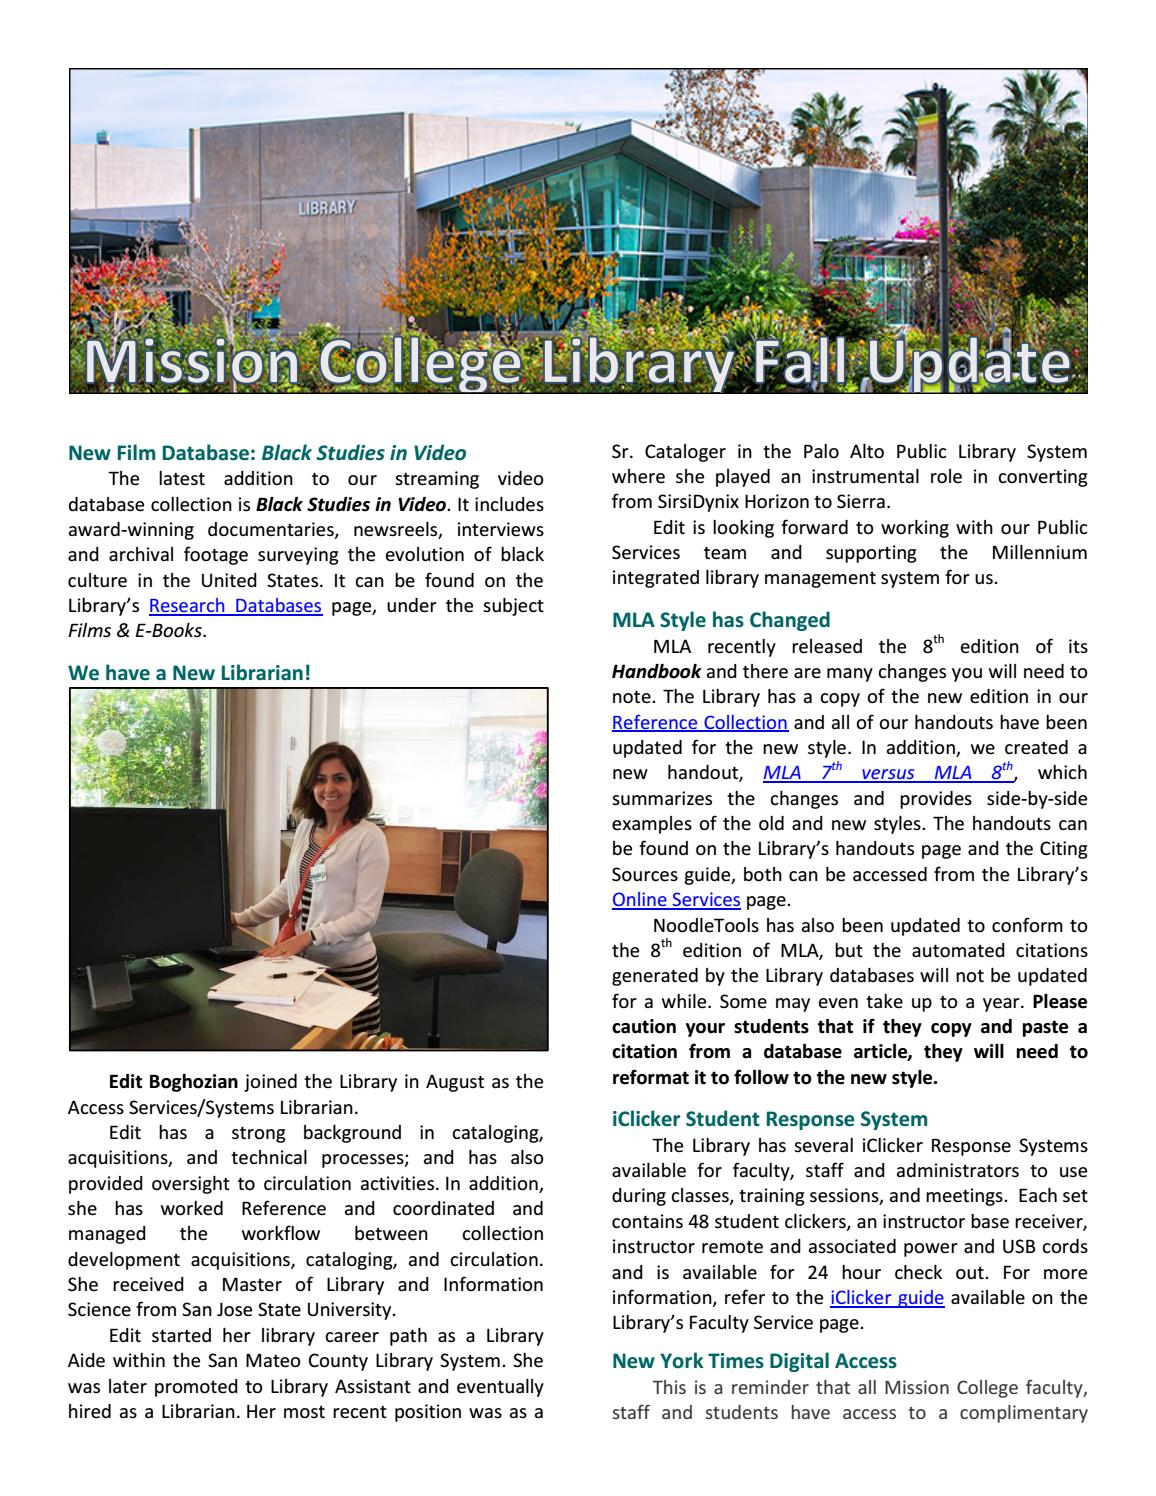 Mission College Library Newsletter Sept 2016 By Mission College Issuu